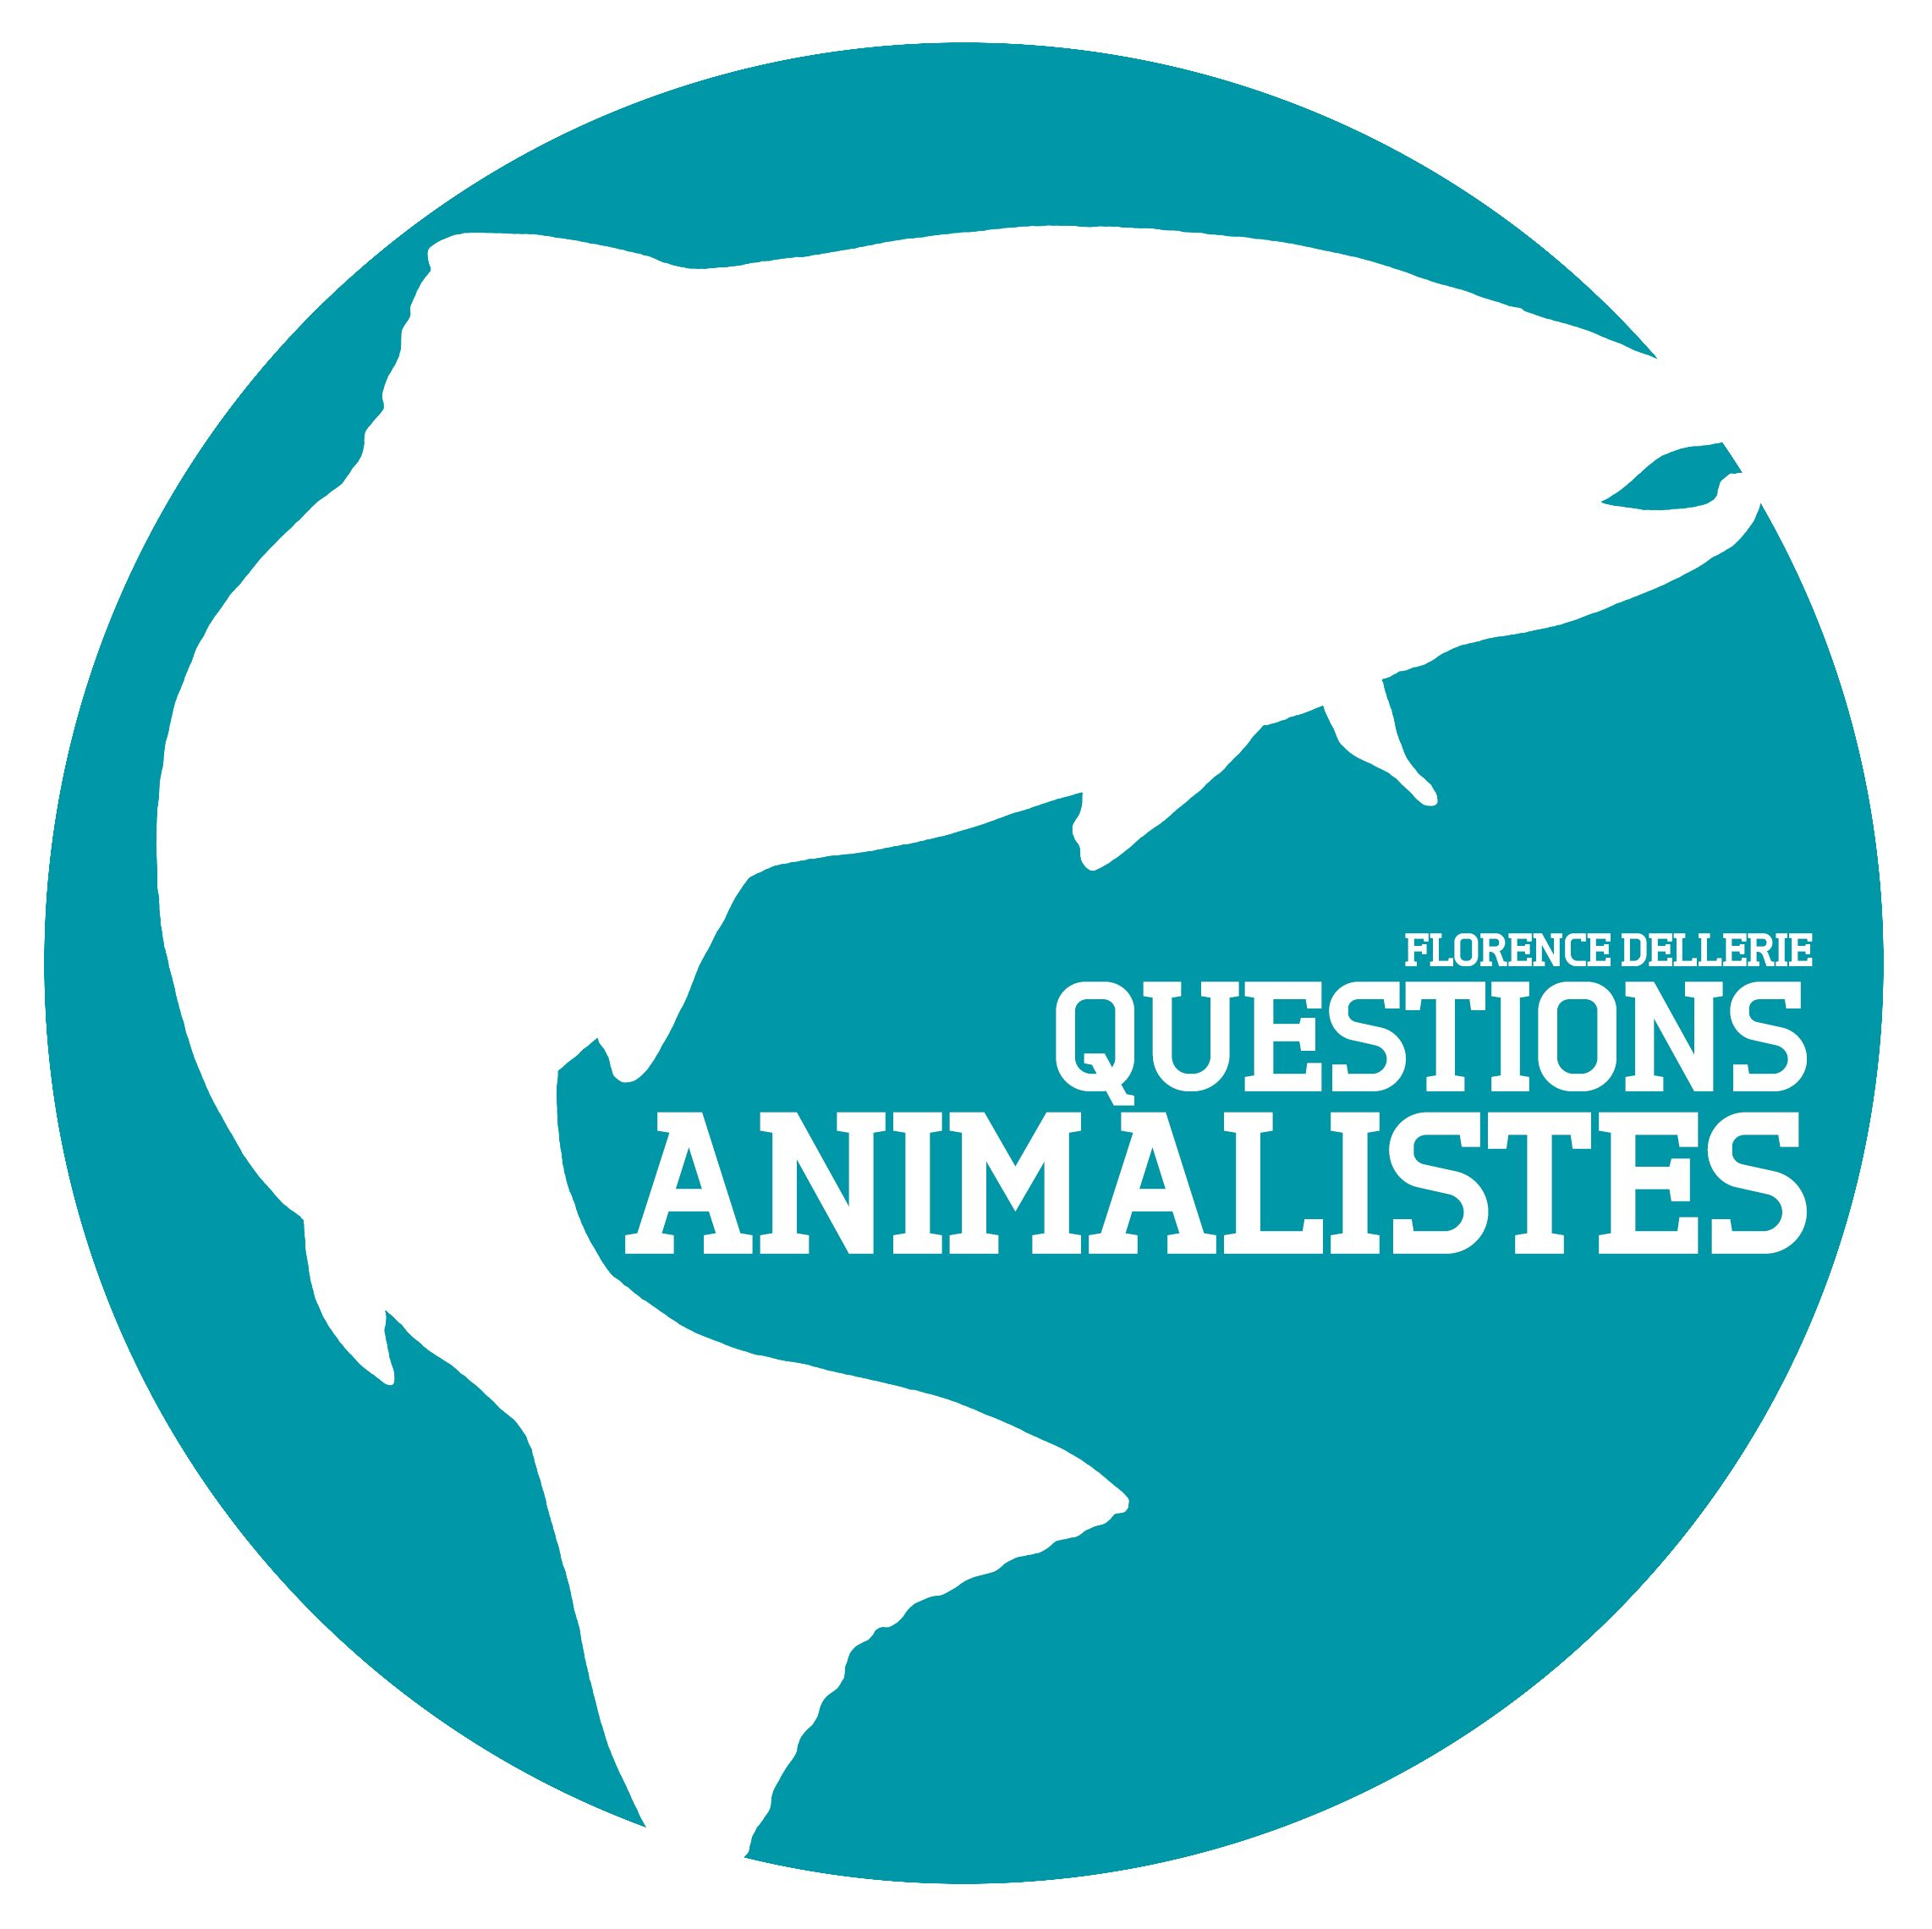 Questions animalistes